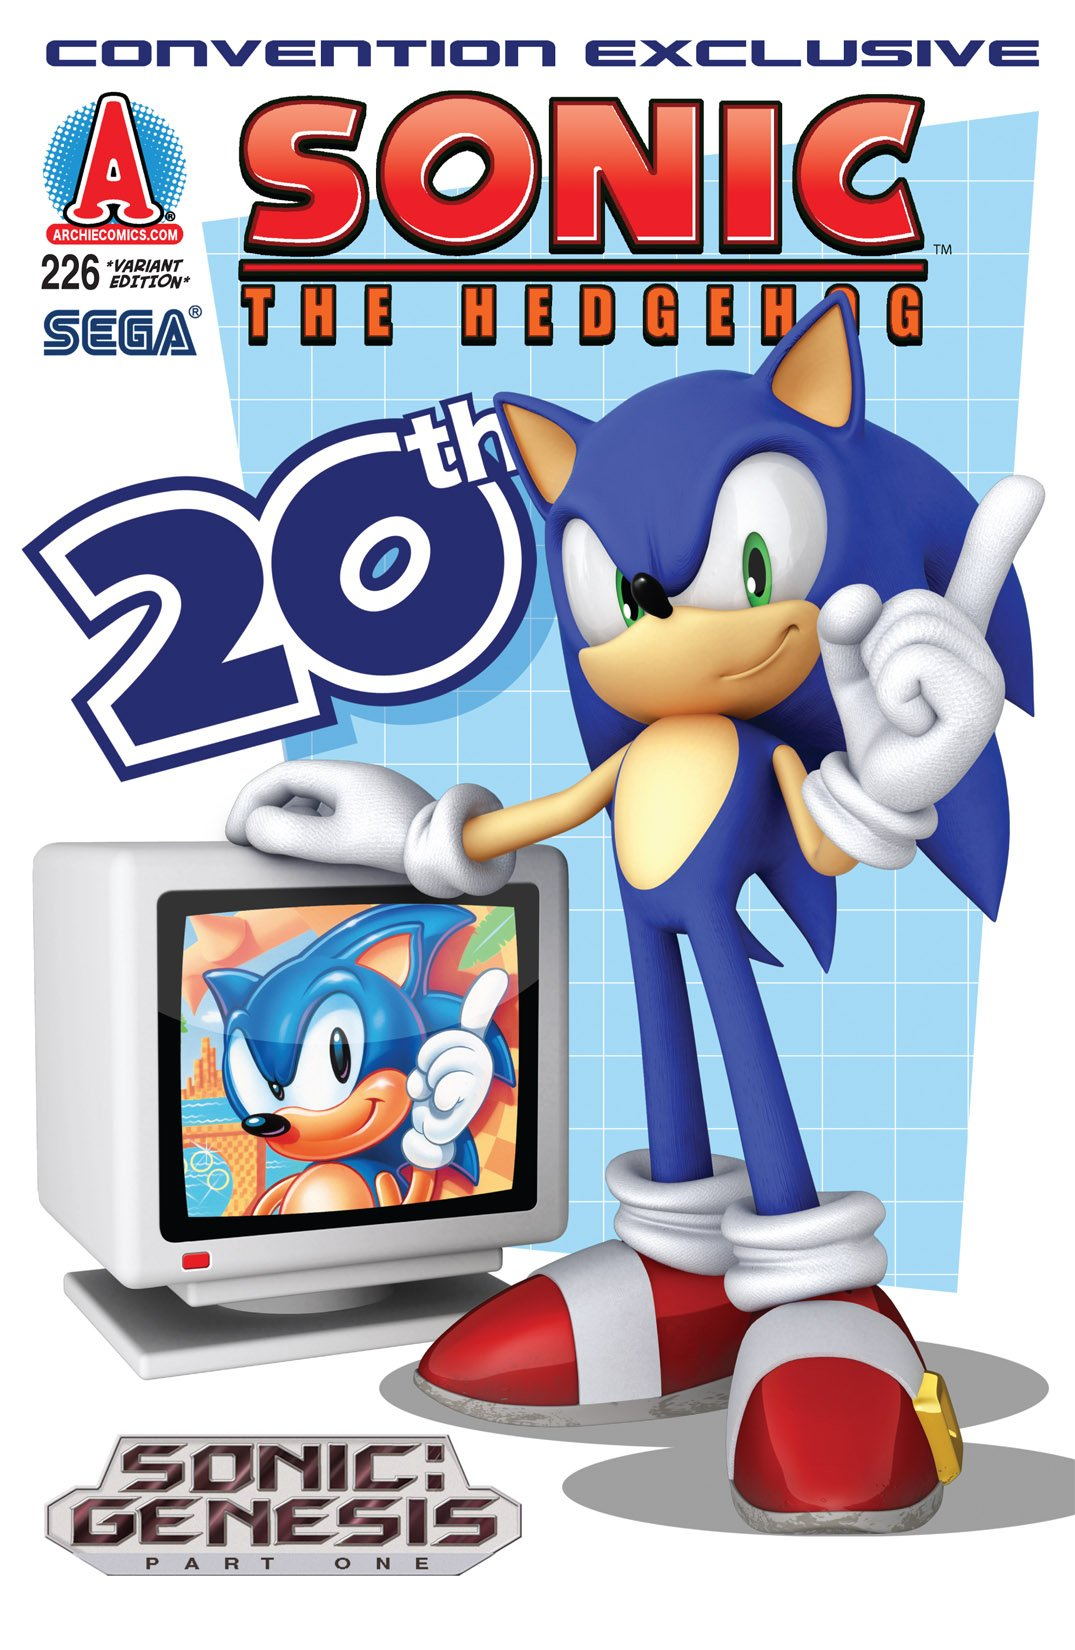 Sonic the Hedgehog 226 (August 2011) (variant edition)